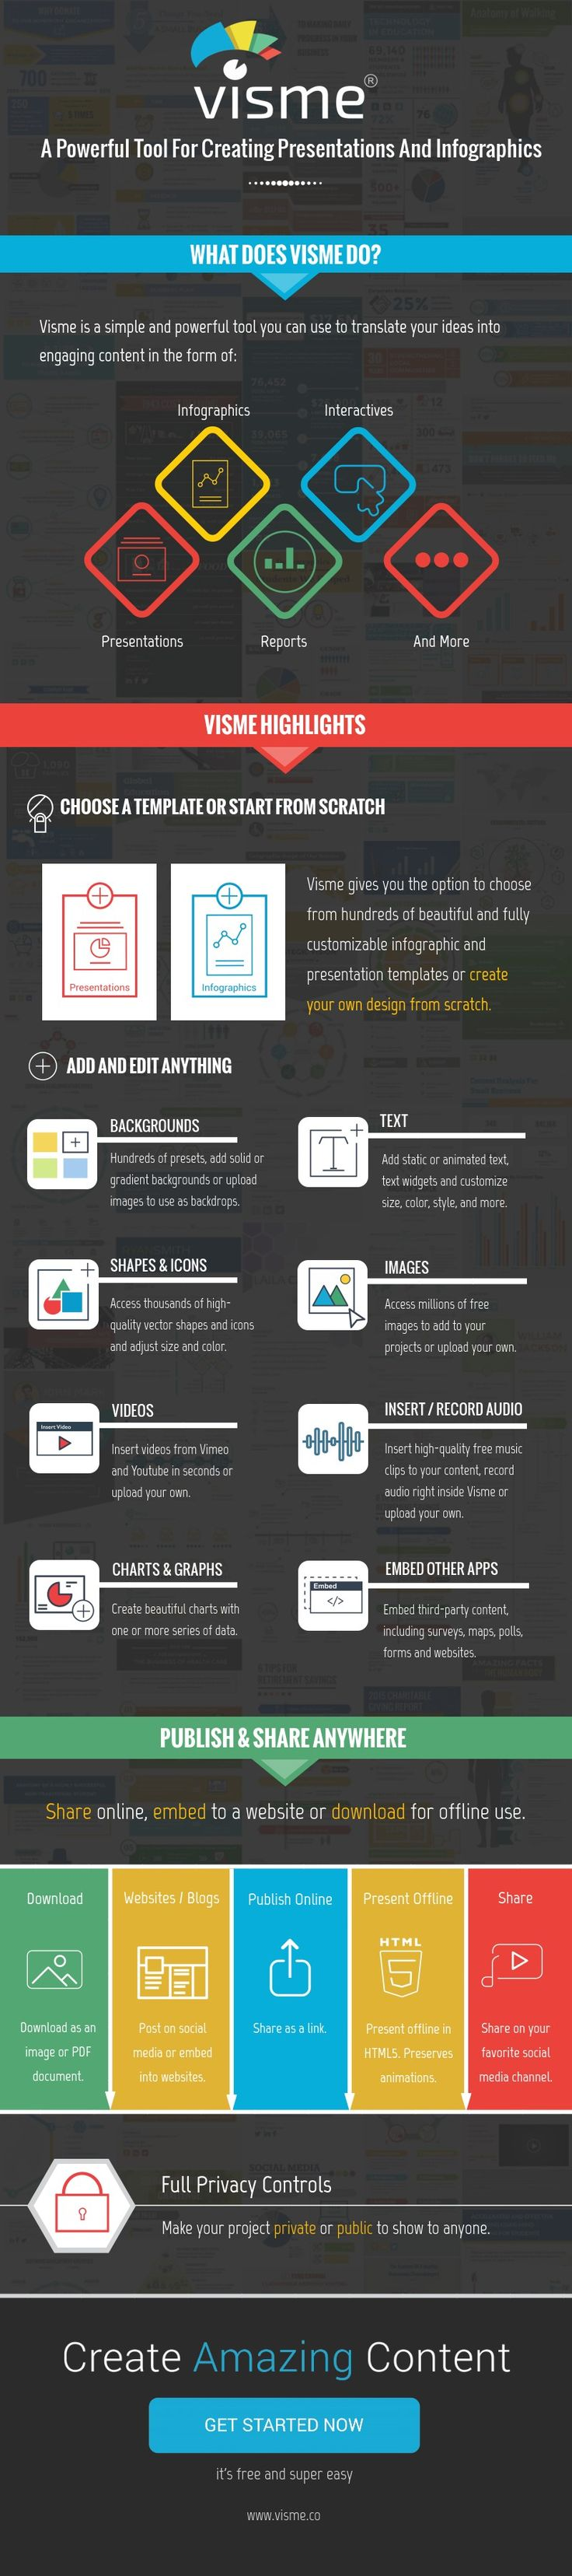 Best 25+ Infographic tools ideas on Pinterest | Data visualization ...